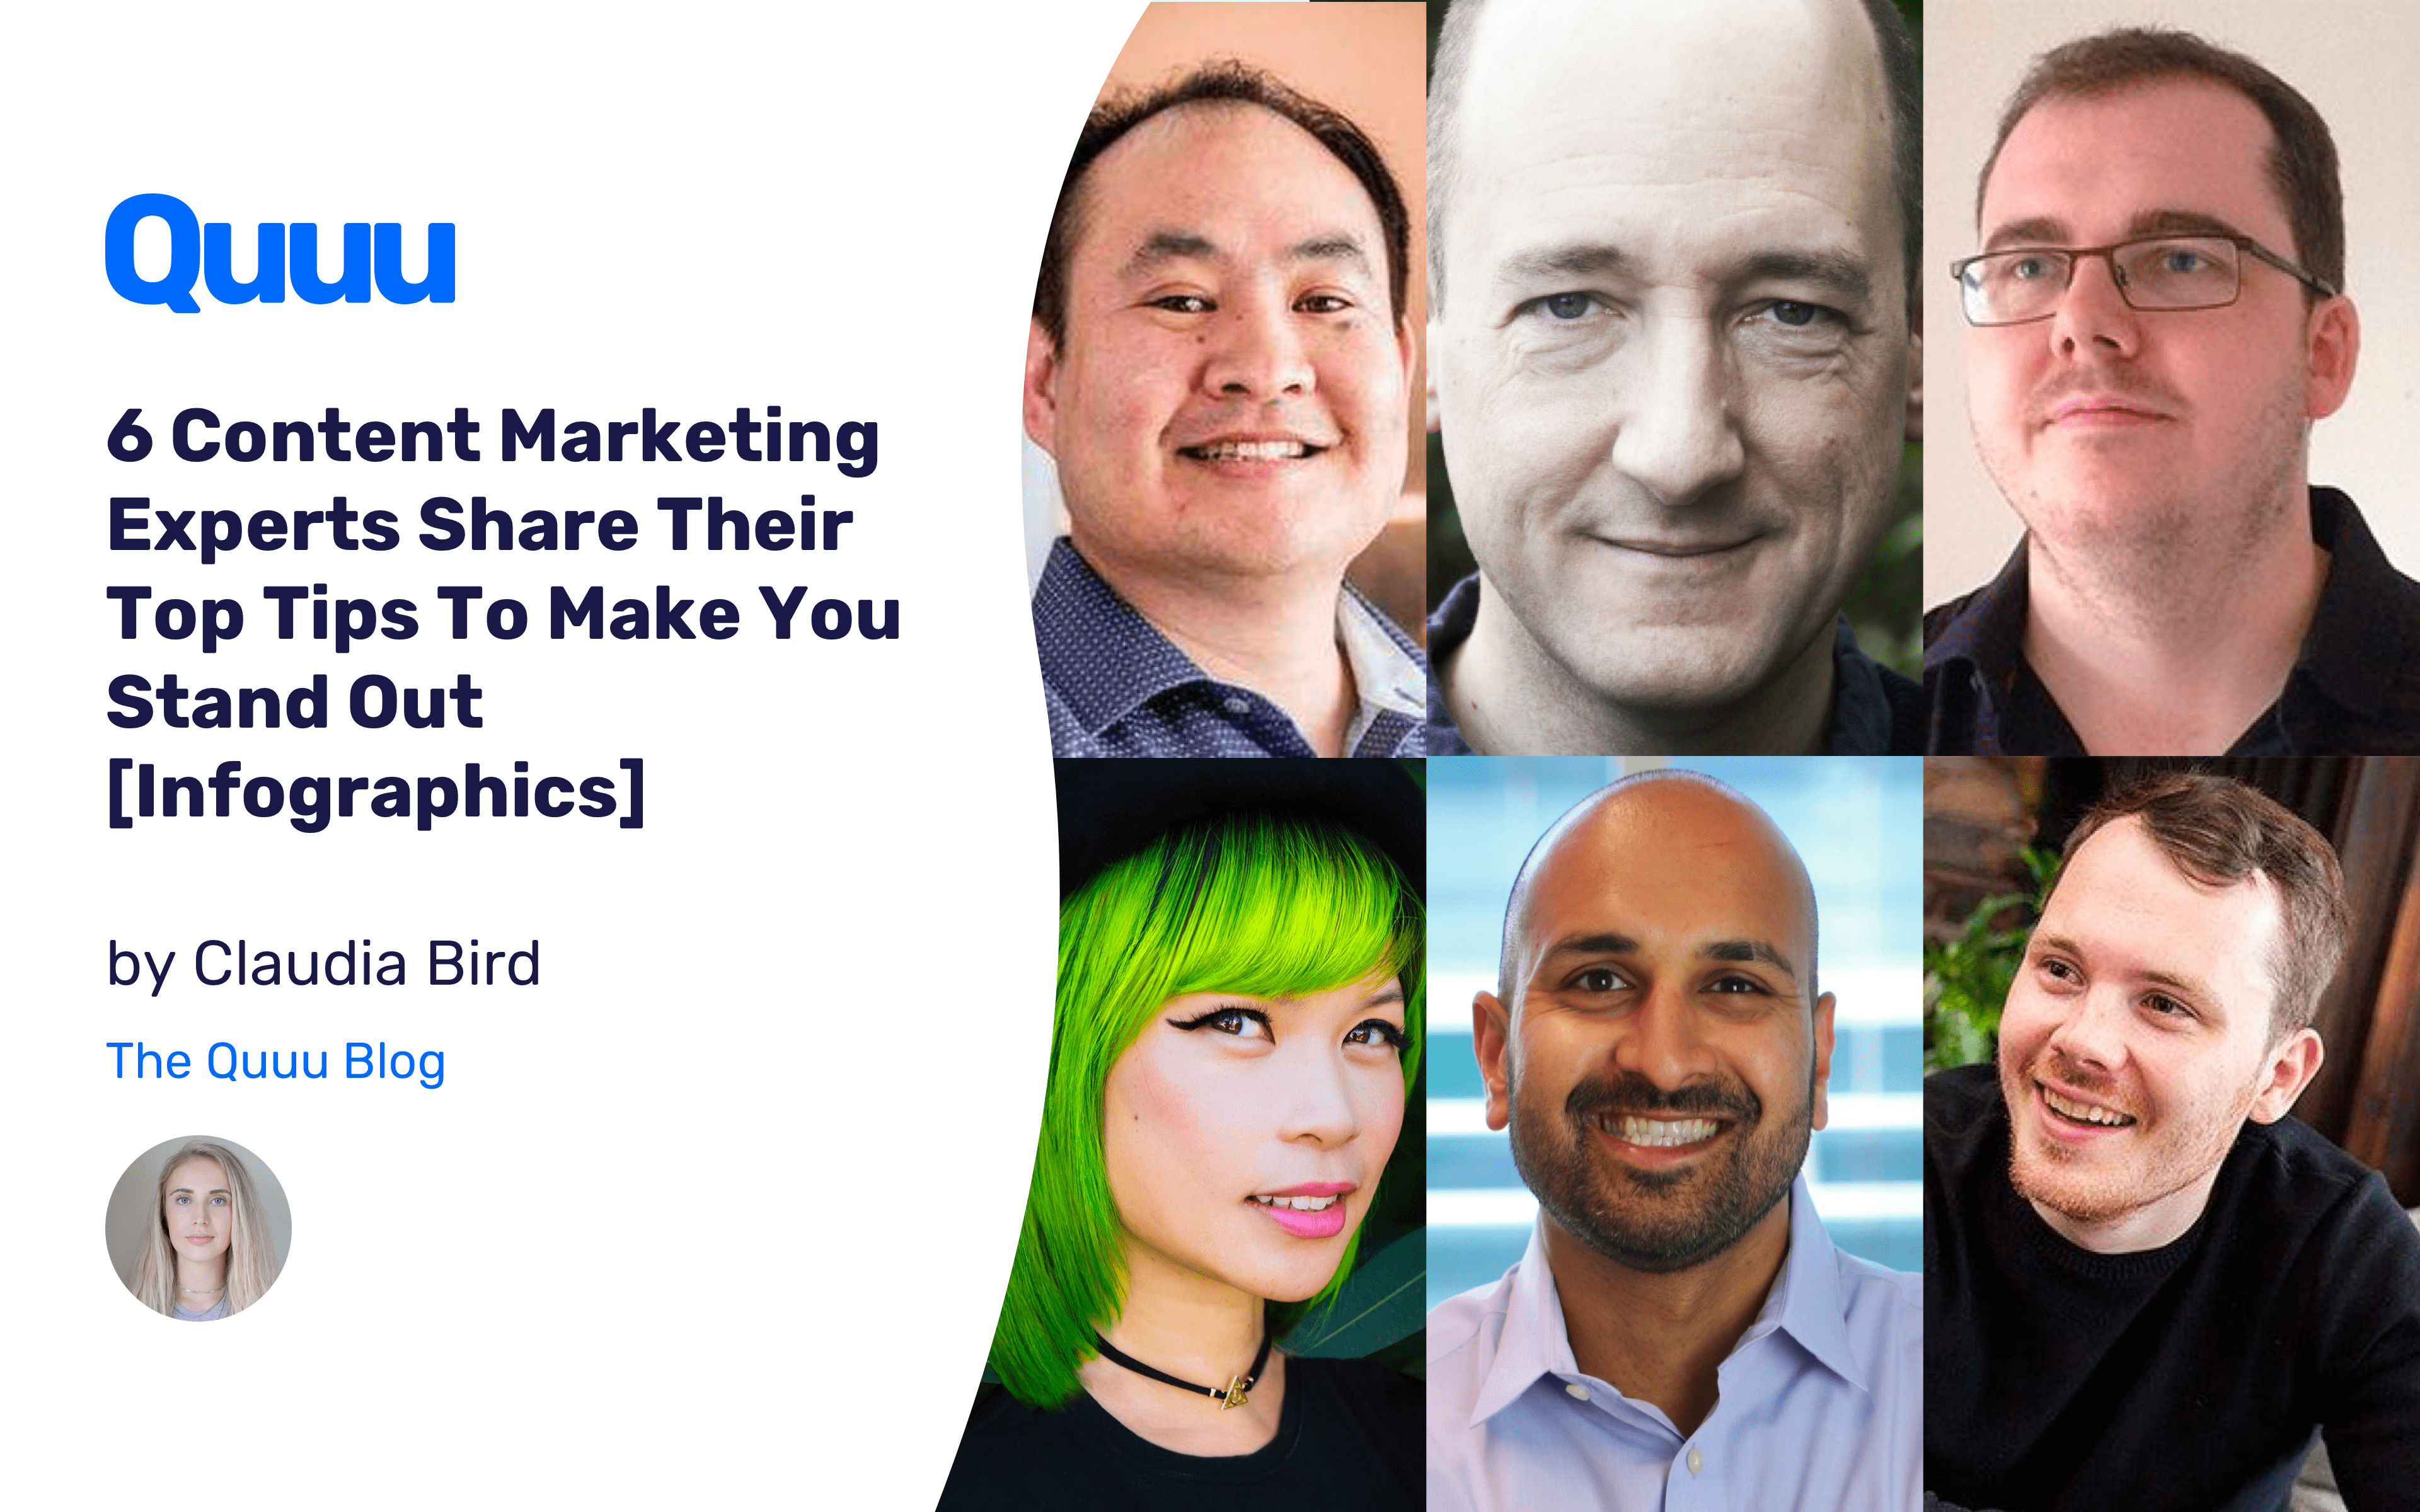 6 Content Marketing Experts Share Their Top Tips To Make You Stand Out [Infographics]